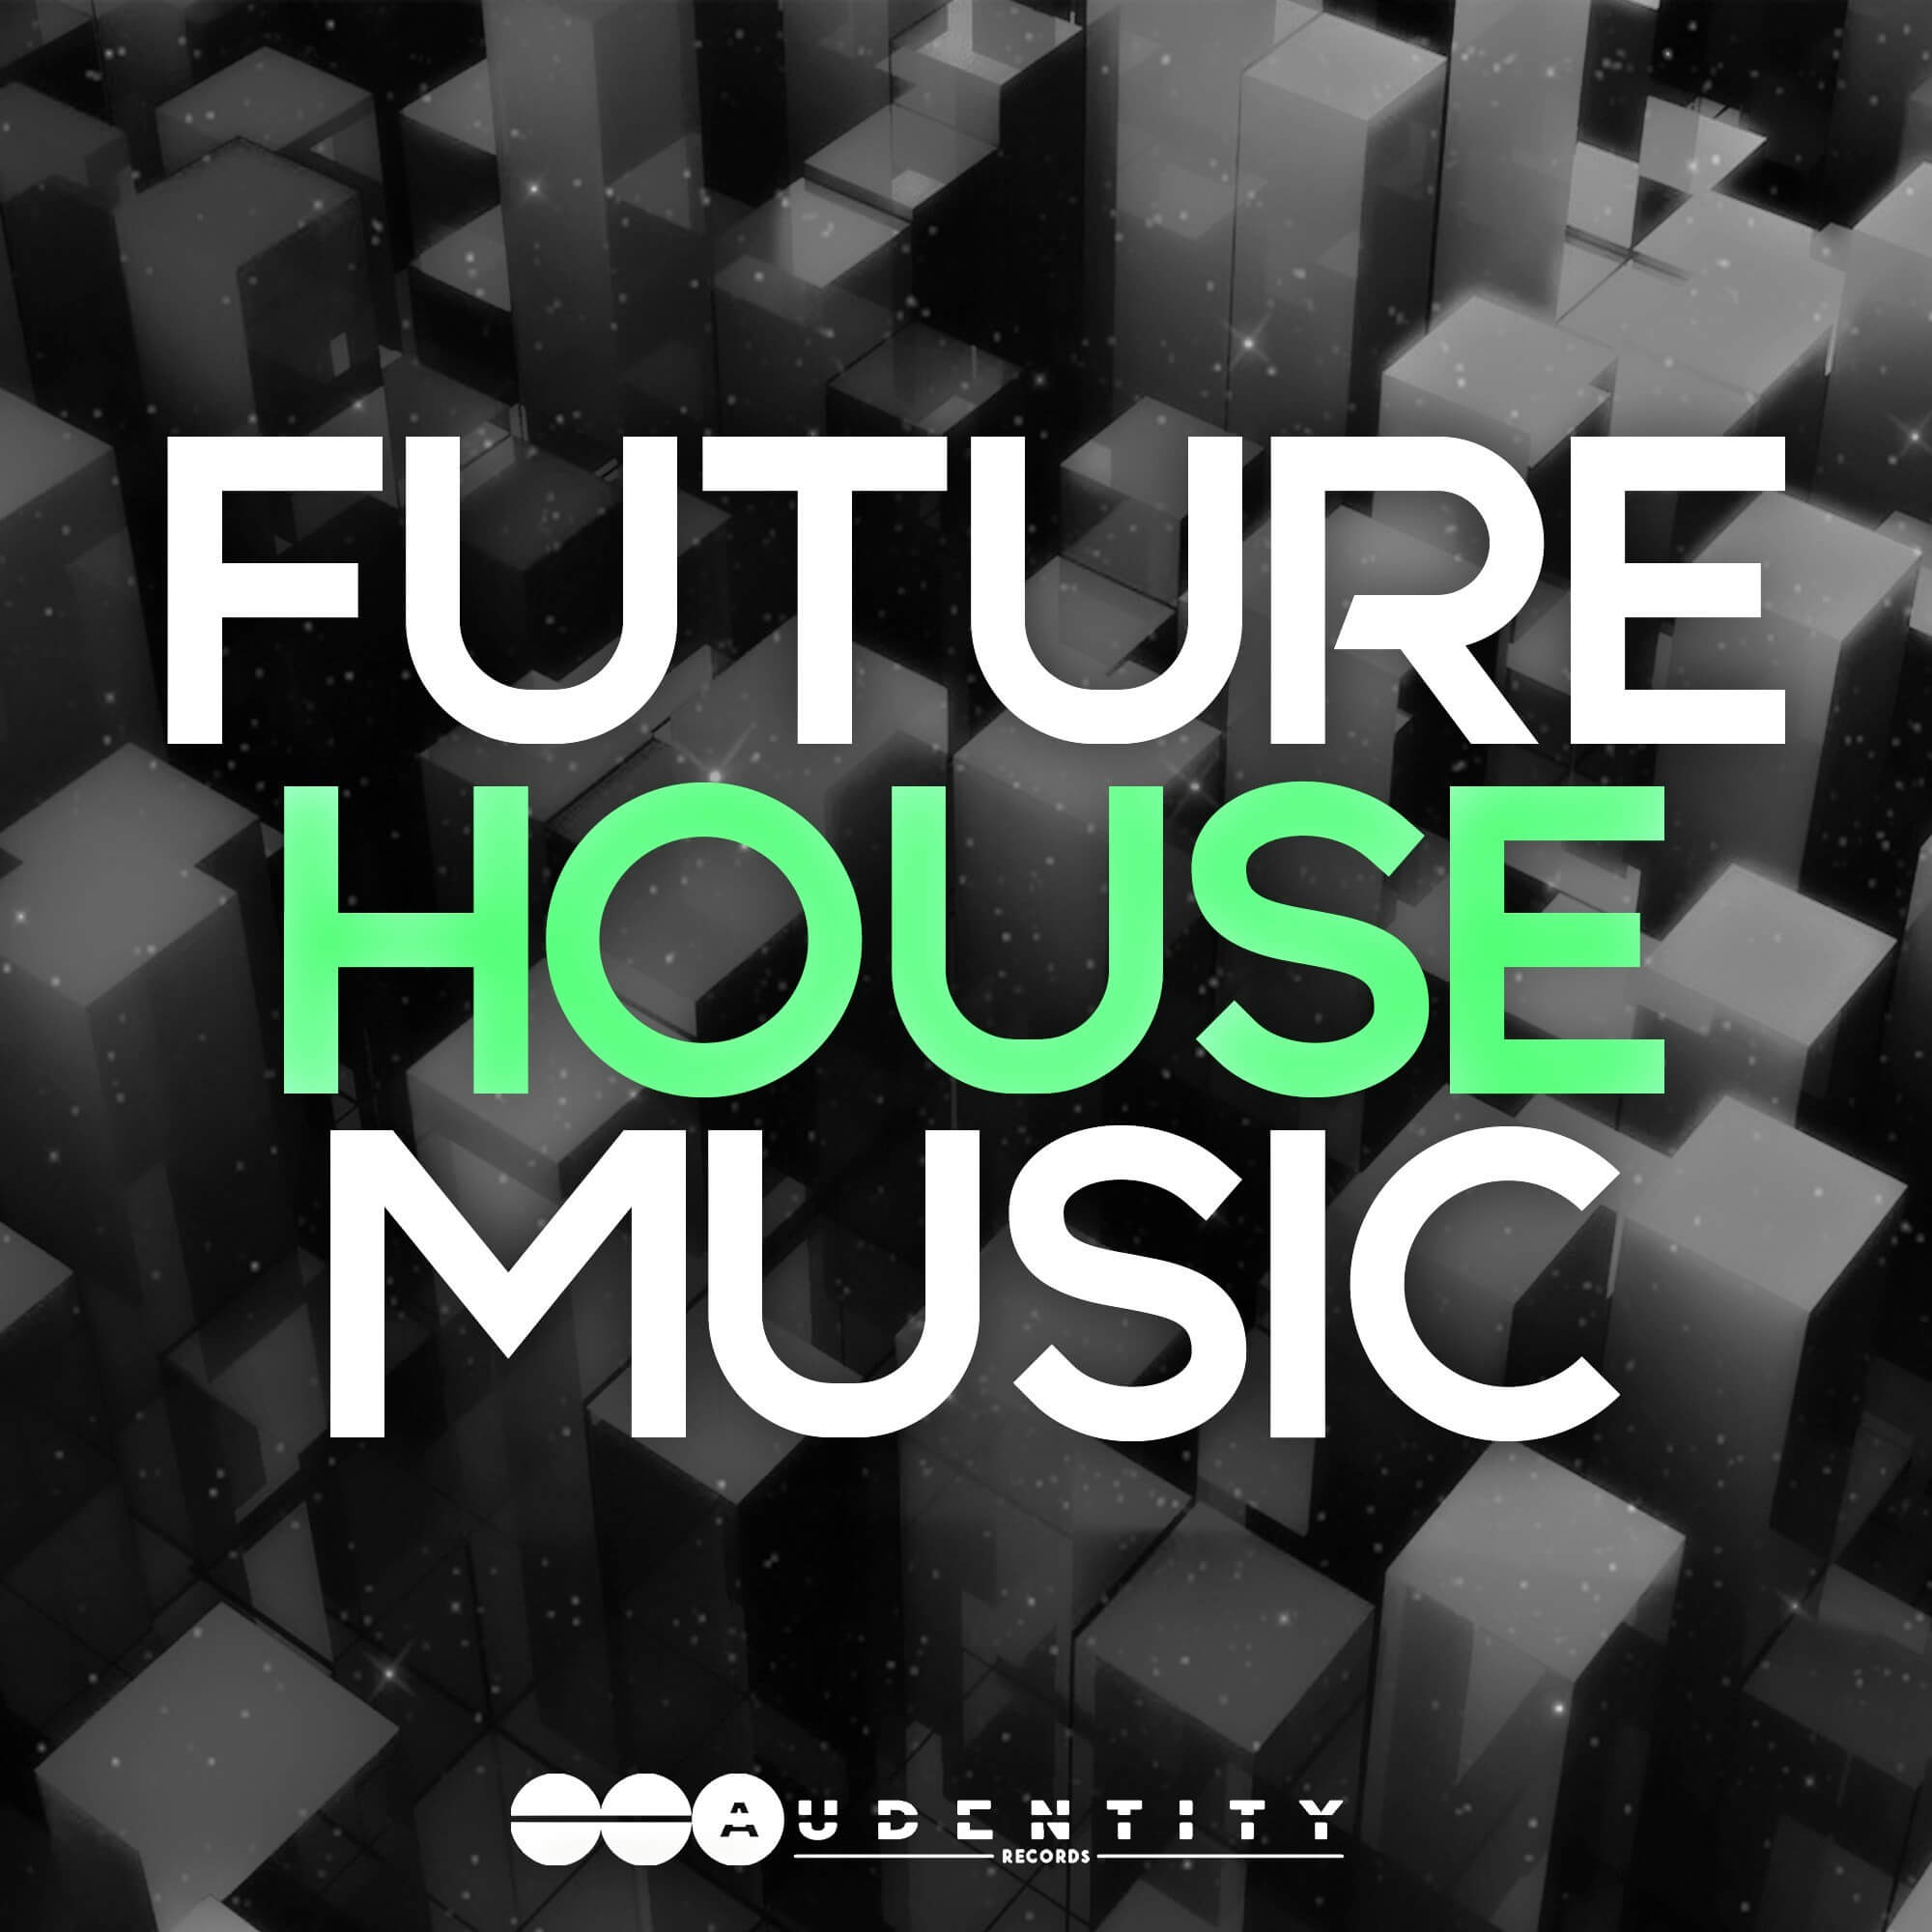 Audentity records future house music sample pack at beatport for House house house music